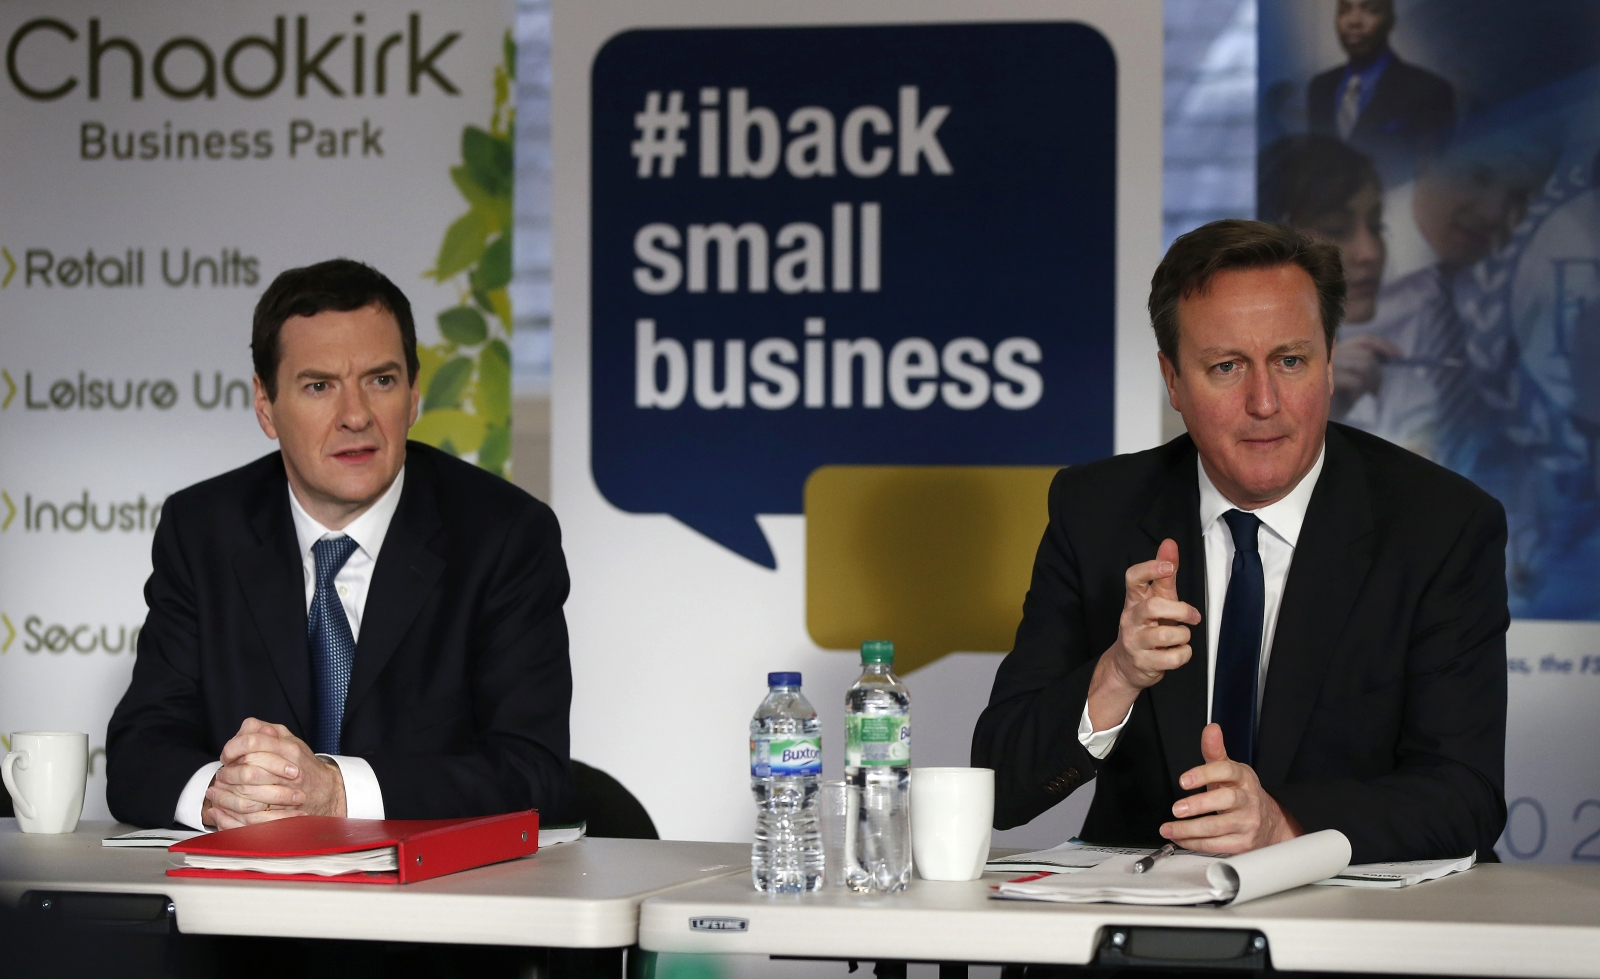 Britain's Prime Minister David Cameron (R) sits with Chancellor George Osborne during a meeting with local small business owners in Stockport, northern England January 9, 2015.